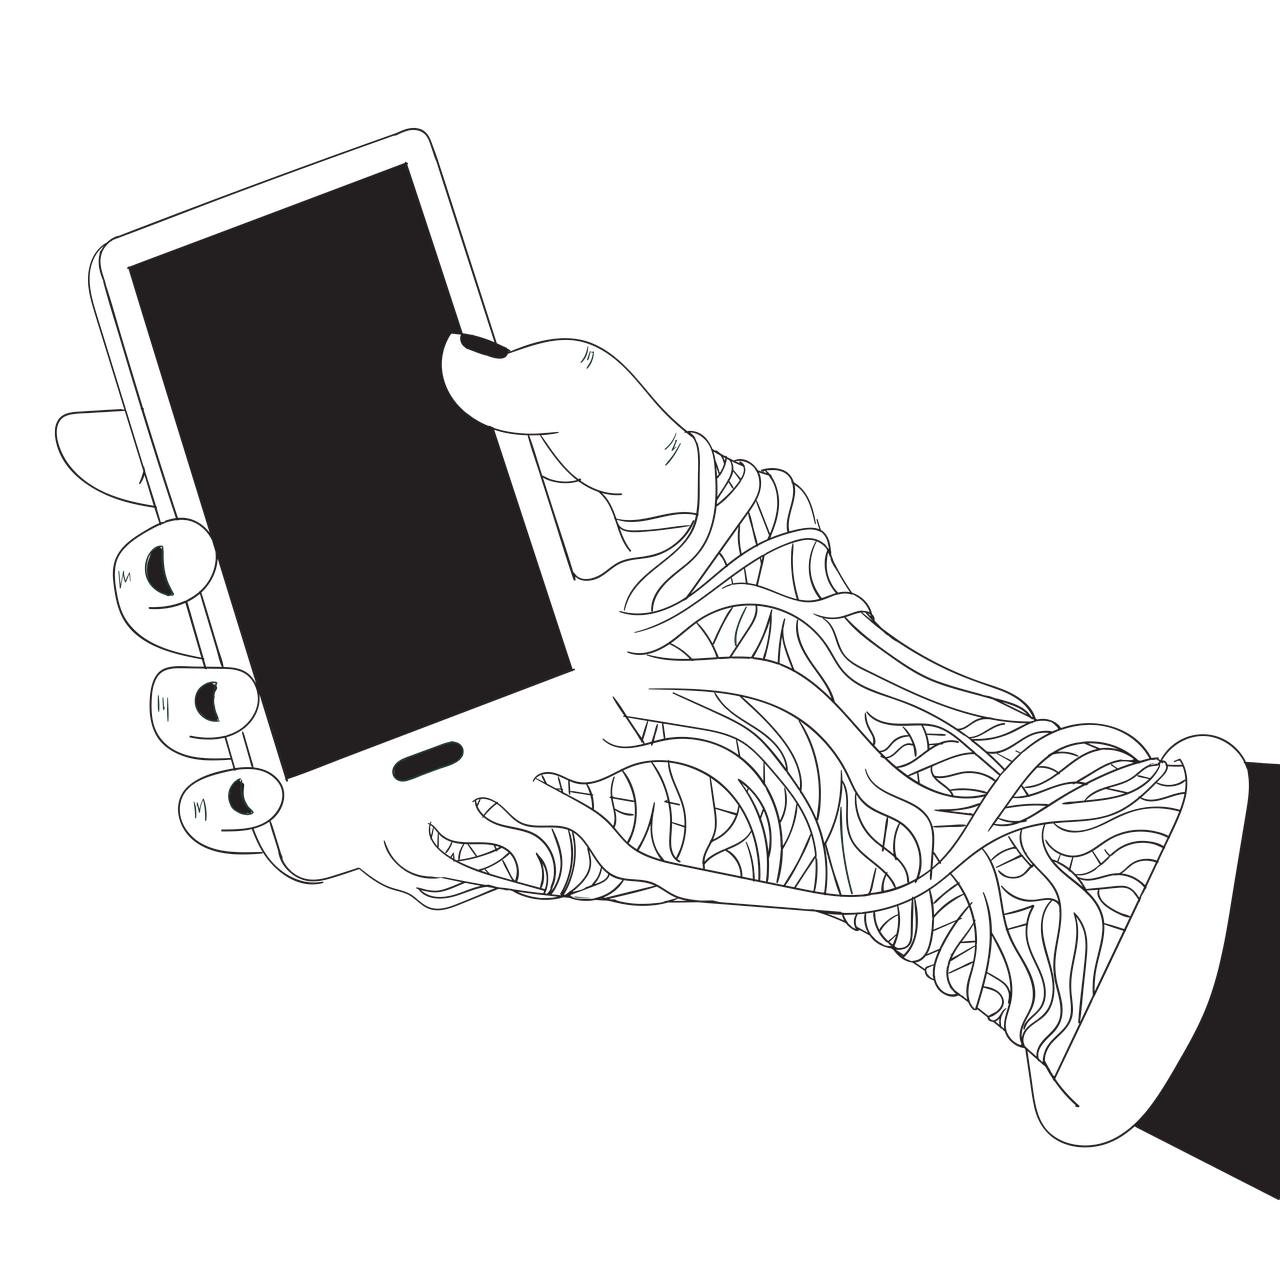 Phone Screen Hand Addiction Social  - Saydung89 / Pixabay